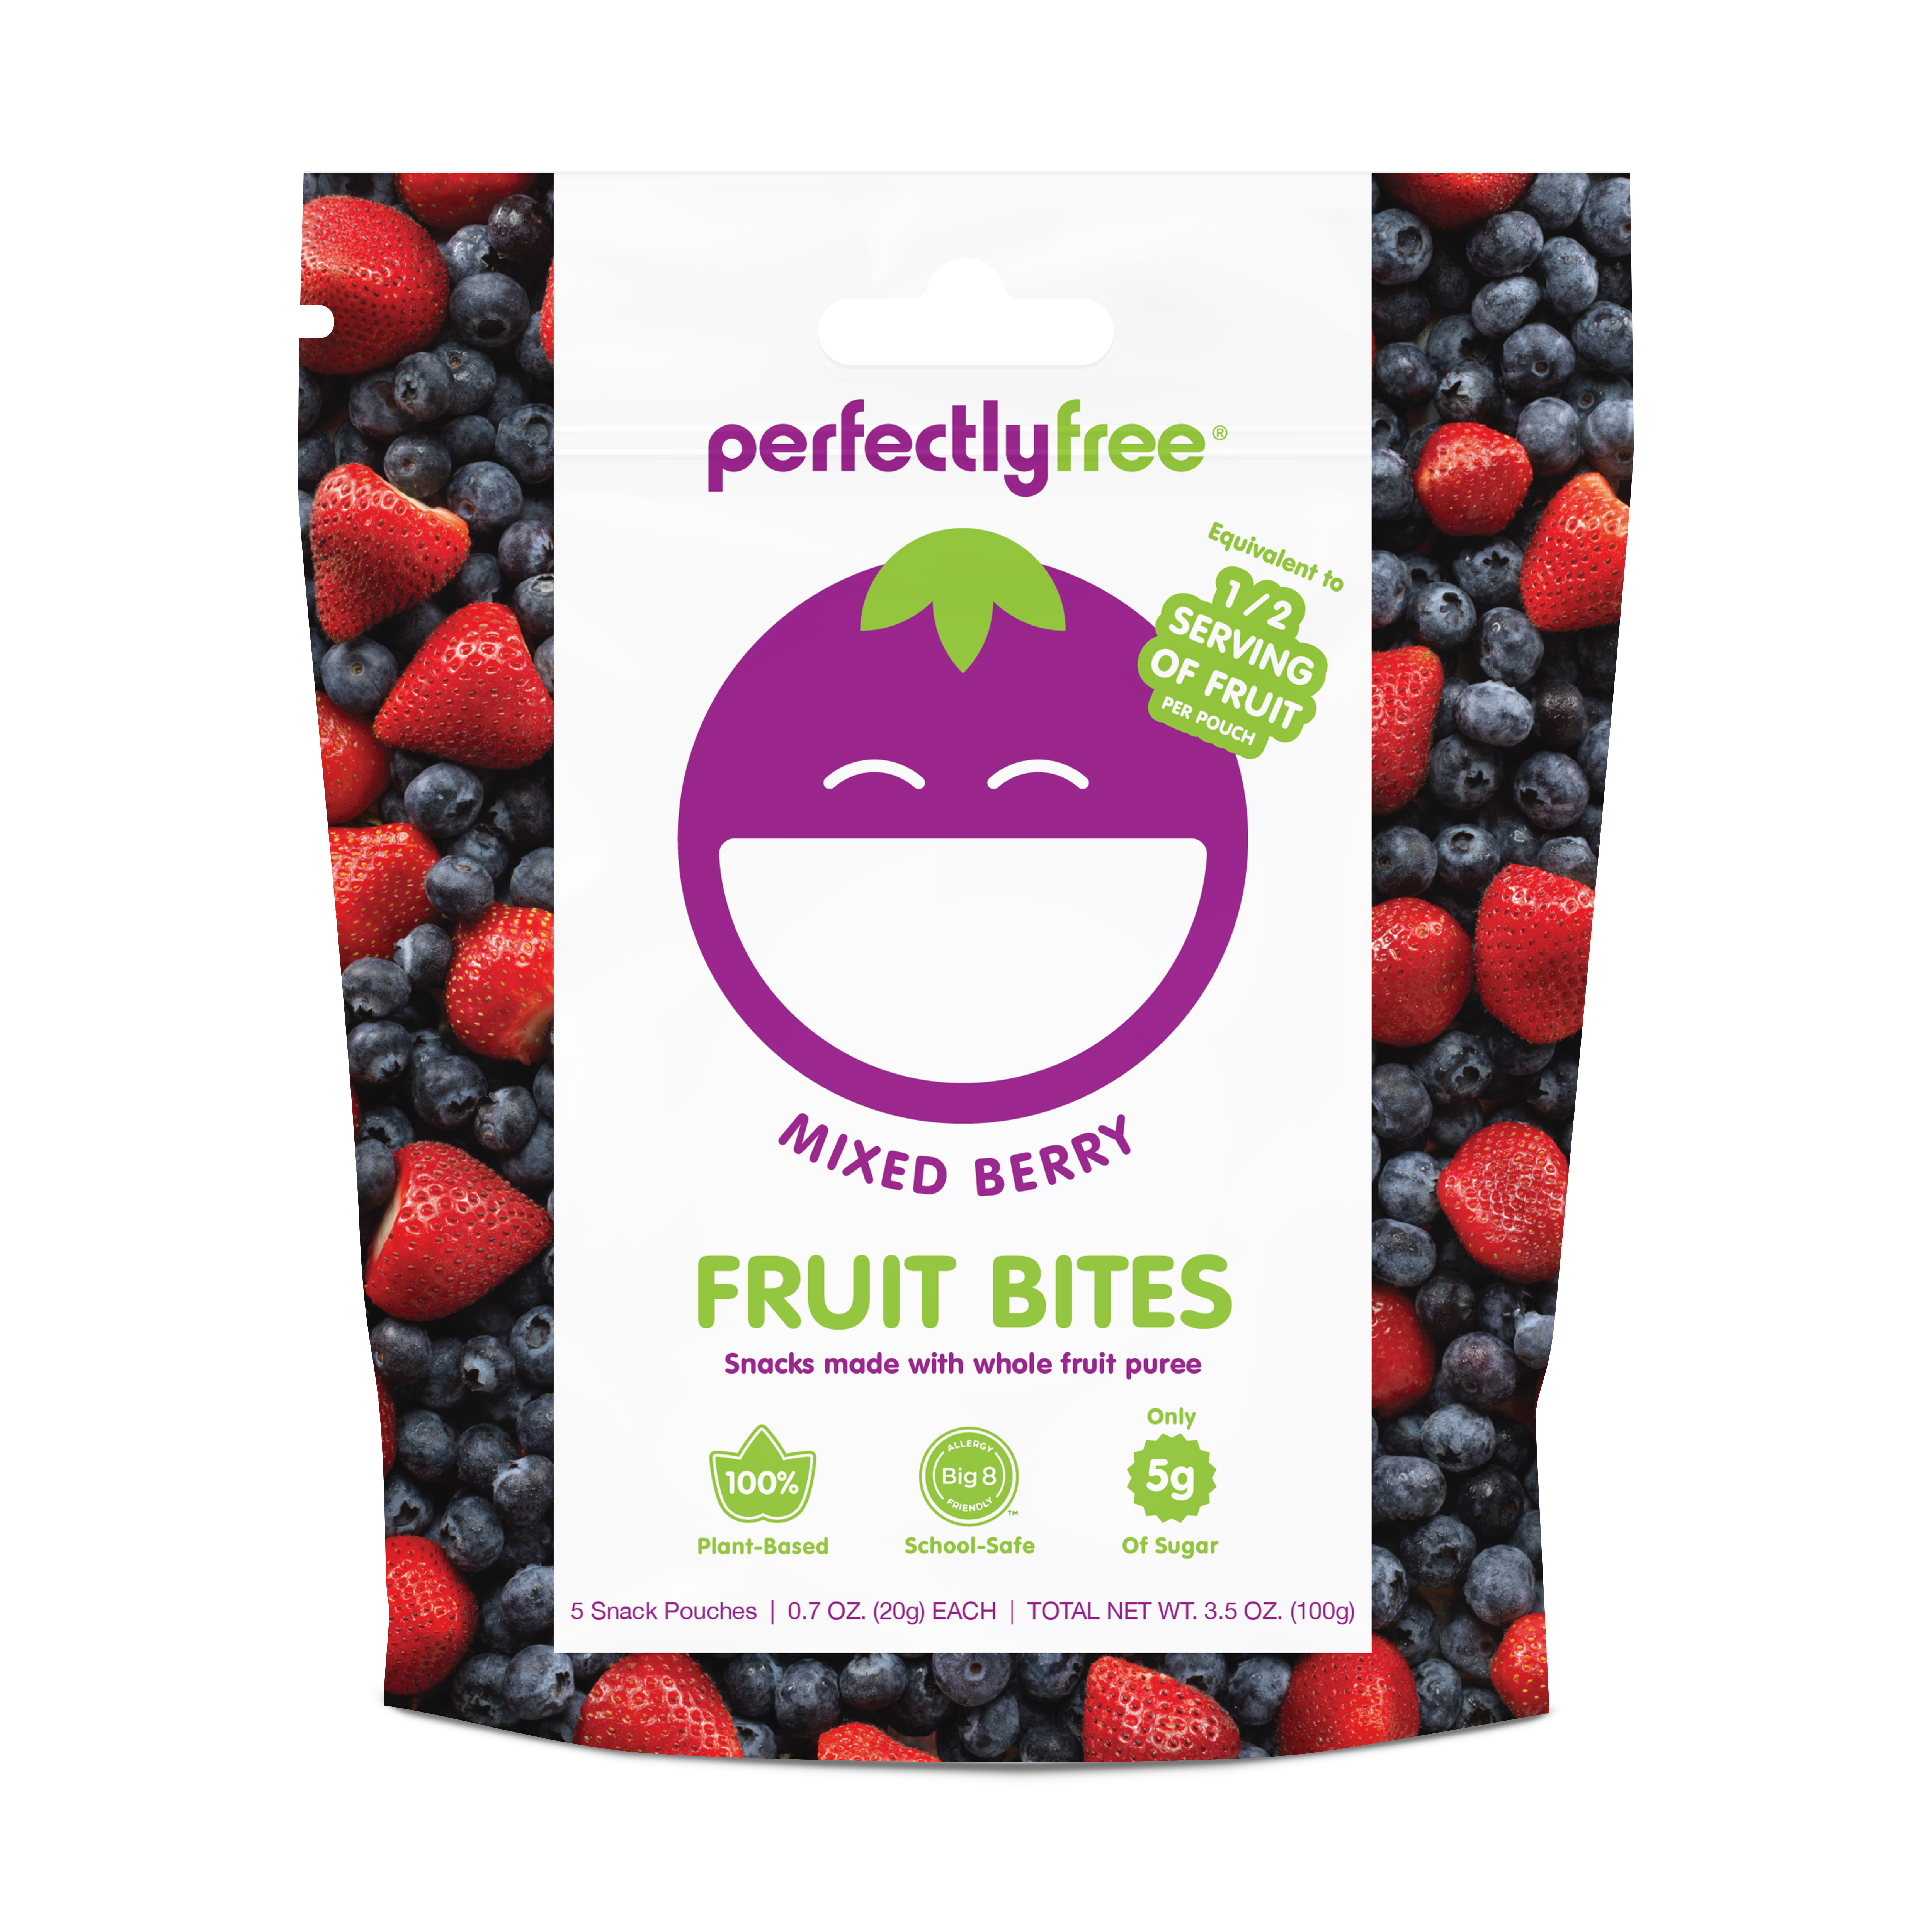 Perfectlyfree(r) Fruit Bites Mixed Berry